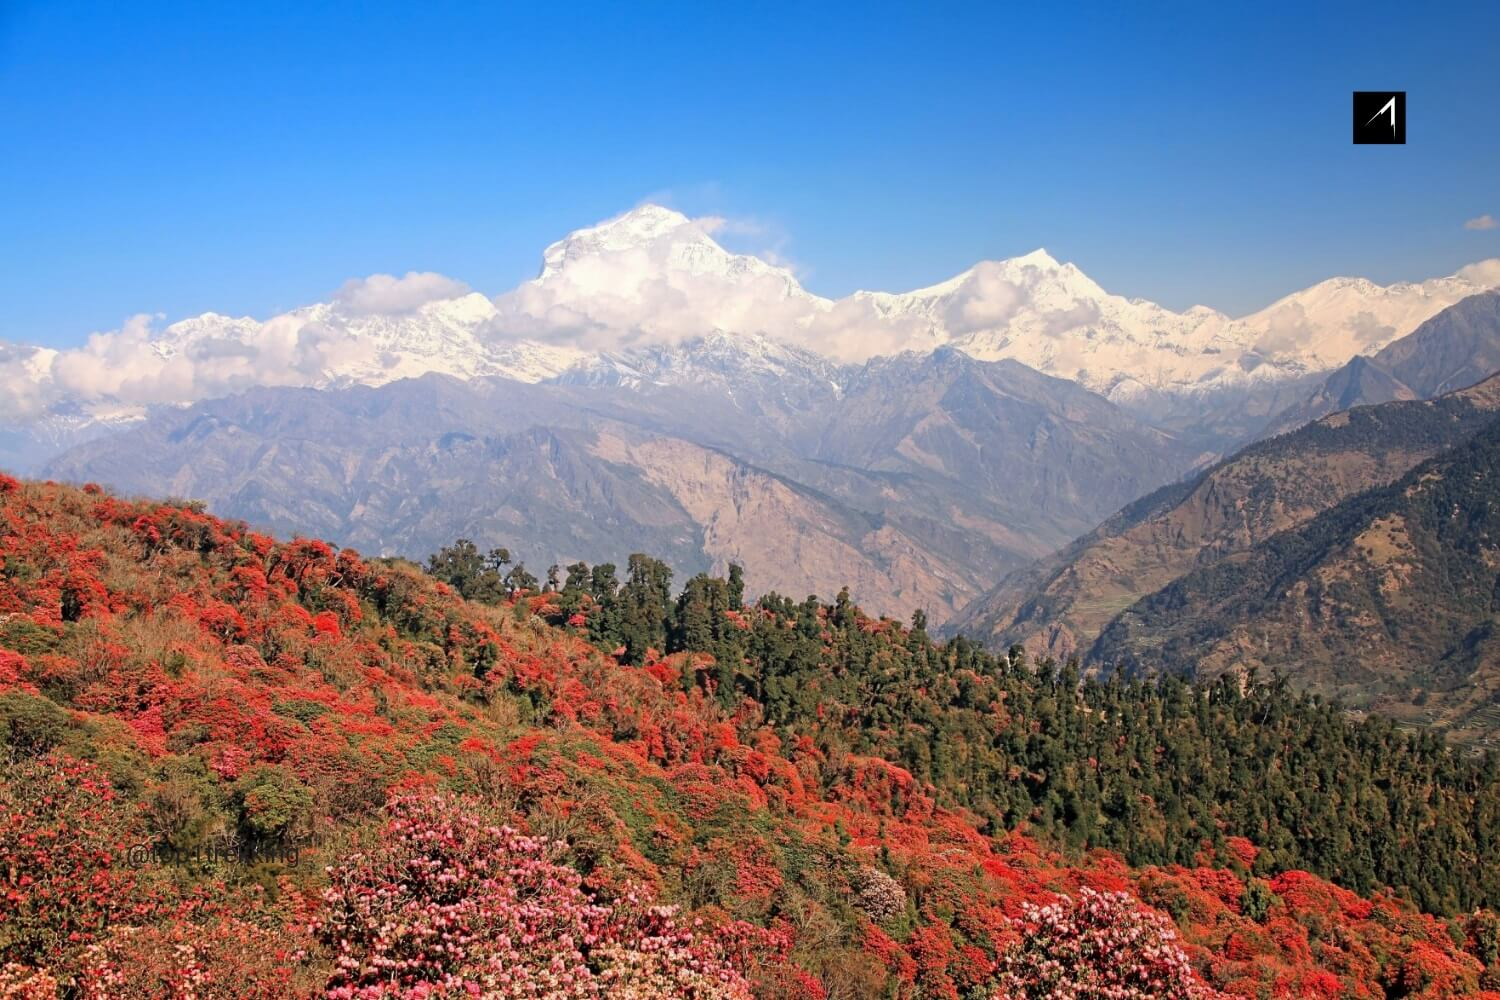 Magnificent Rhododendron blooms in higher altitude above 2,800m seen from Poon Hill